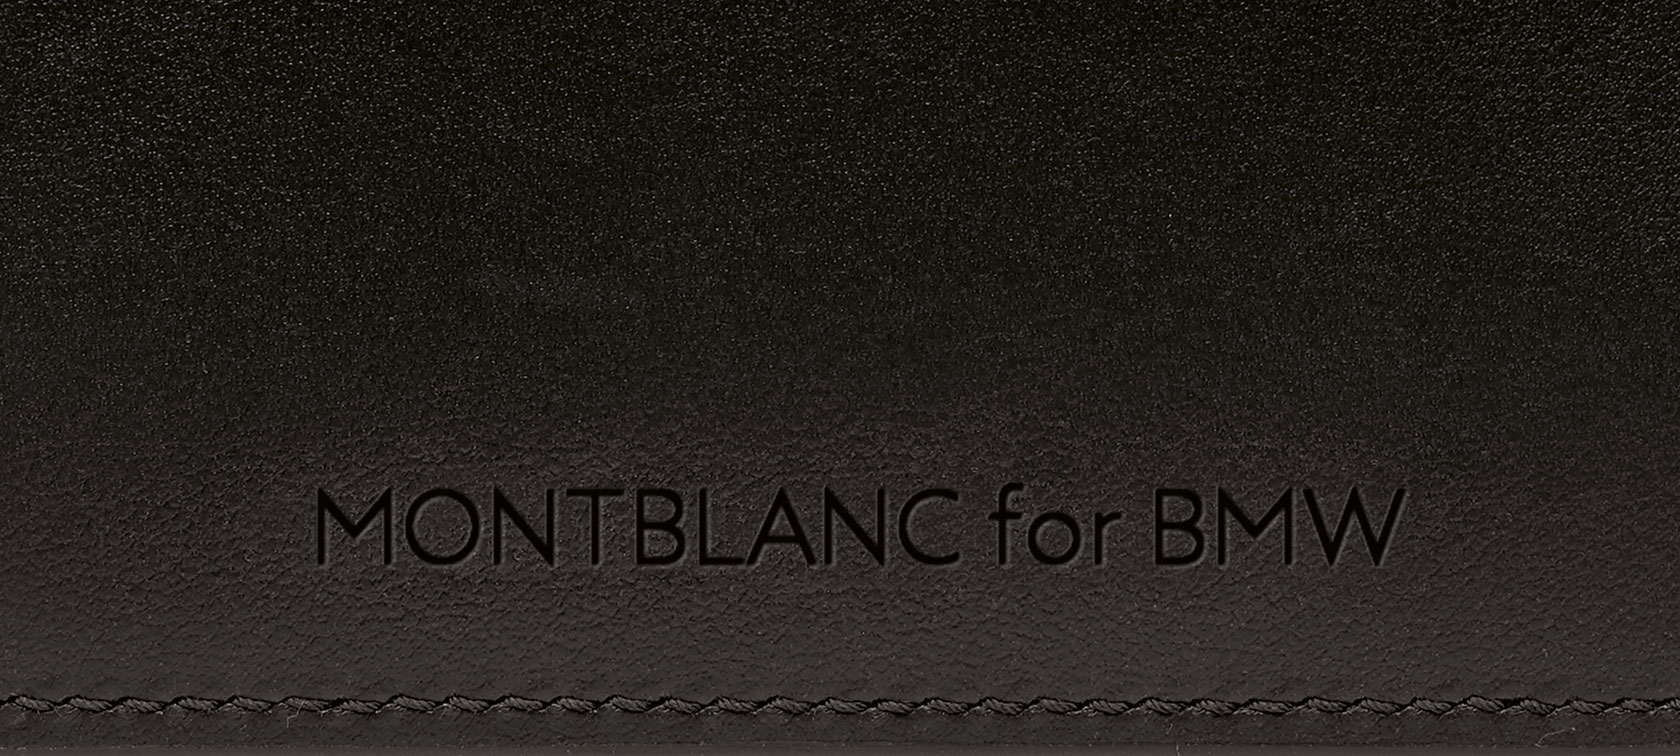 The picture shows the Montblanc for BMW Credit Card Holder.